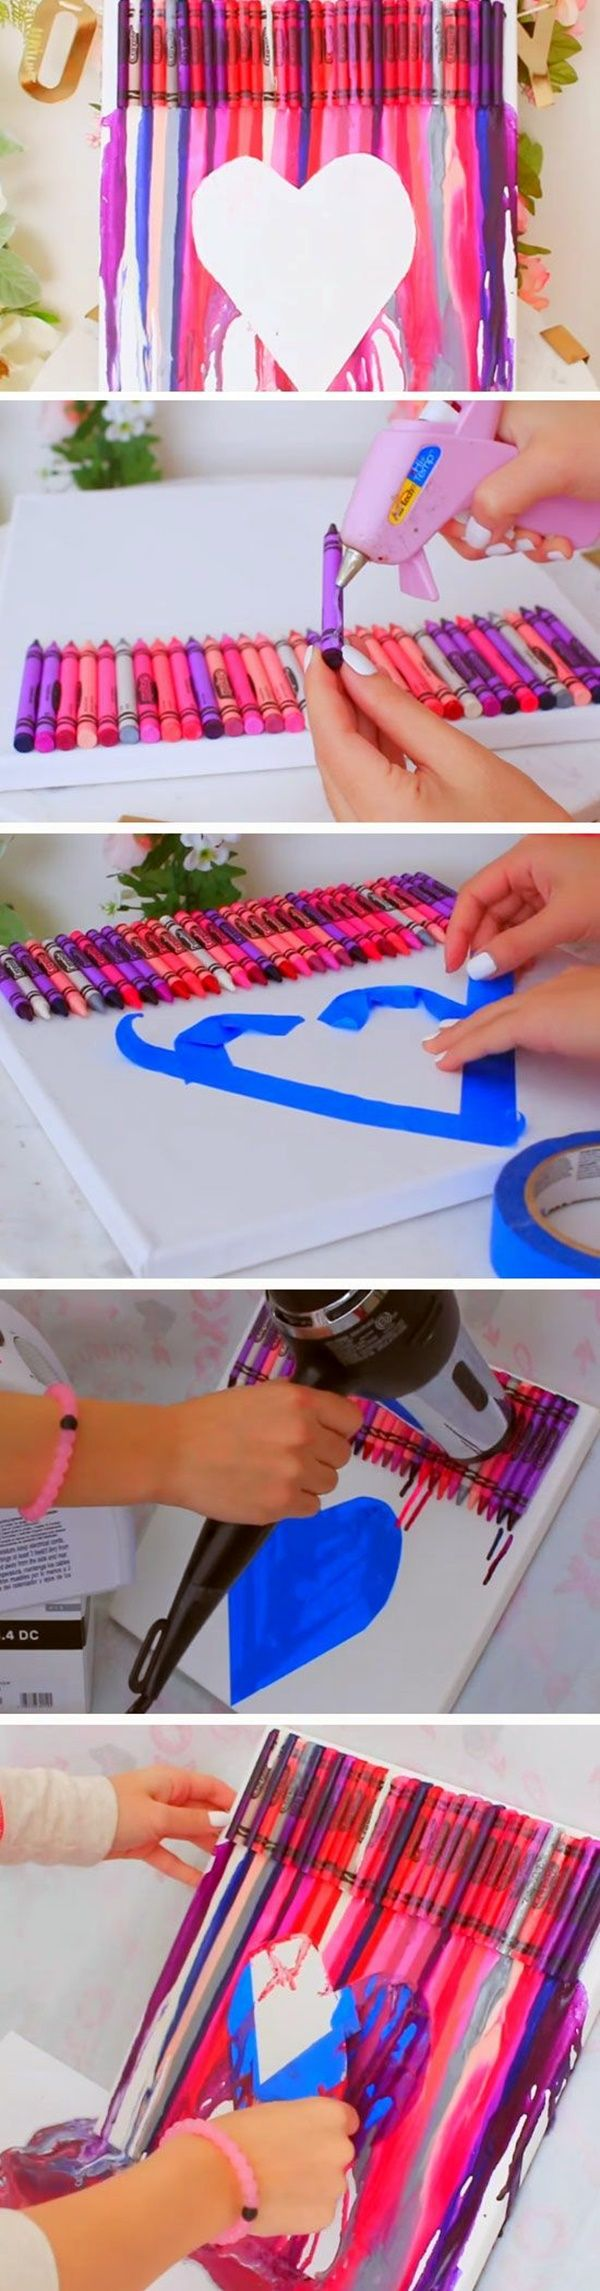 101 homemade valentines day ideas for him thatre really cute - Cute Valentine Ideas For Her